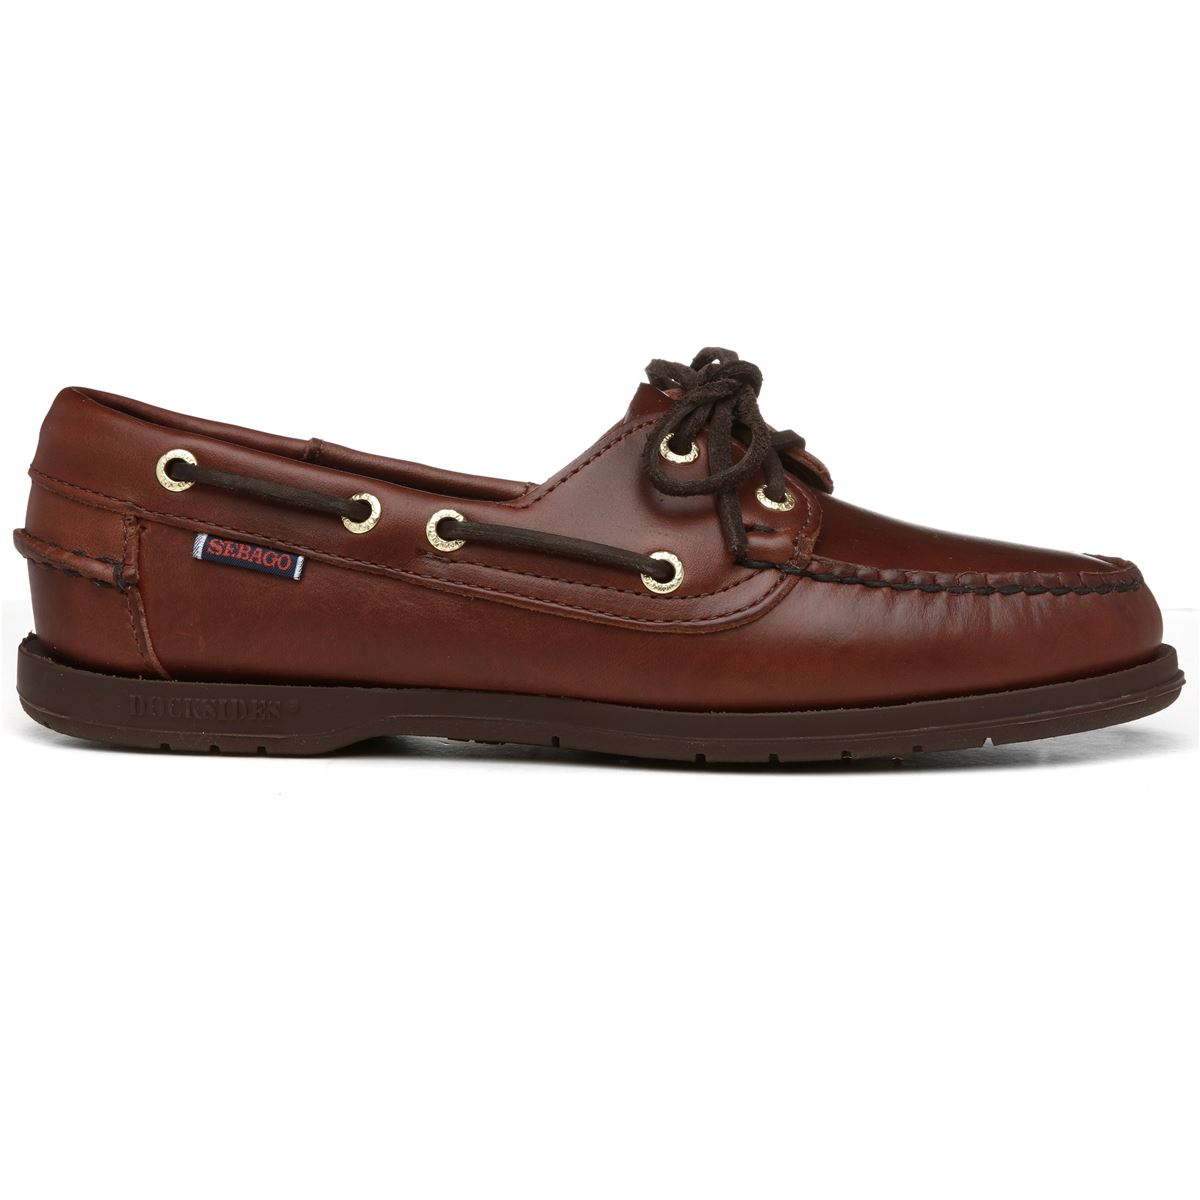 Sebago Shoes Moccasin VICTORY FGL BRUSHED W Woman Leisure Moccasin